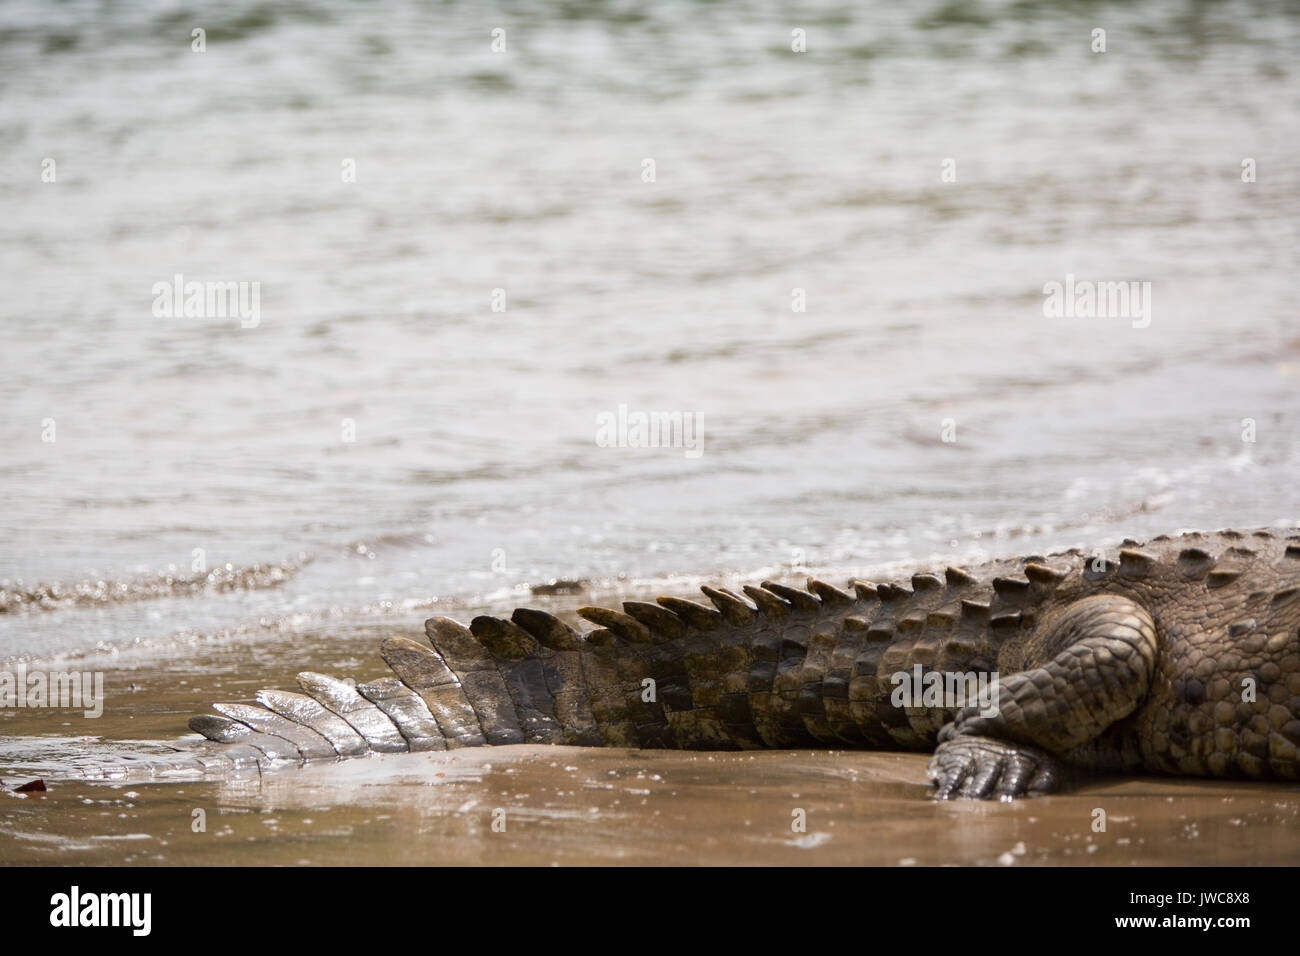 In Isla Coiba National Park,the details of an american crocodile's tough,scaly skin and tail are visible resting in the water. - Stock Image